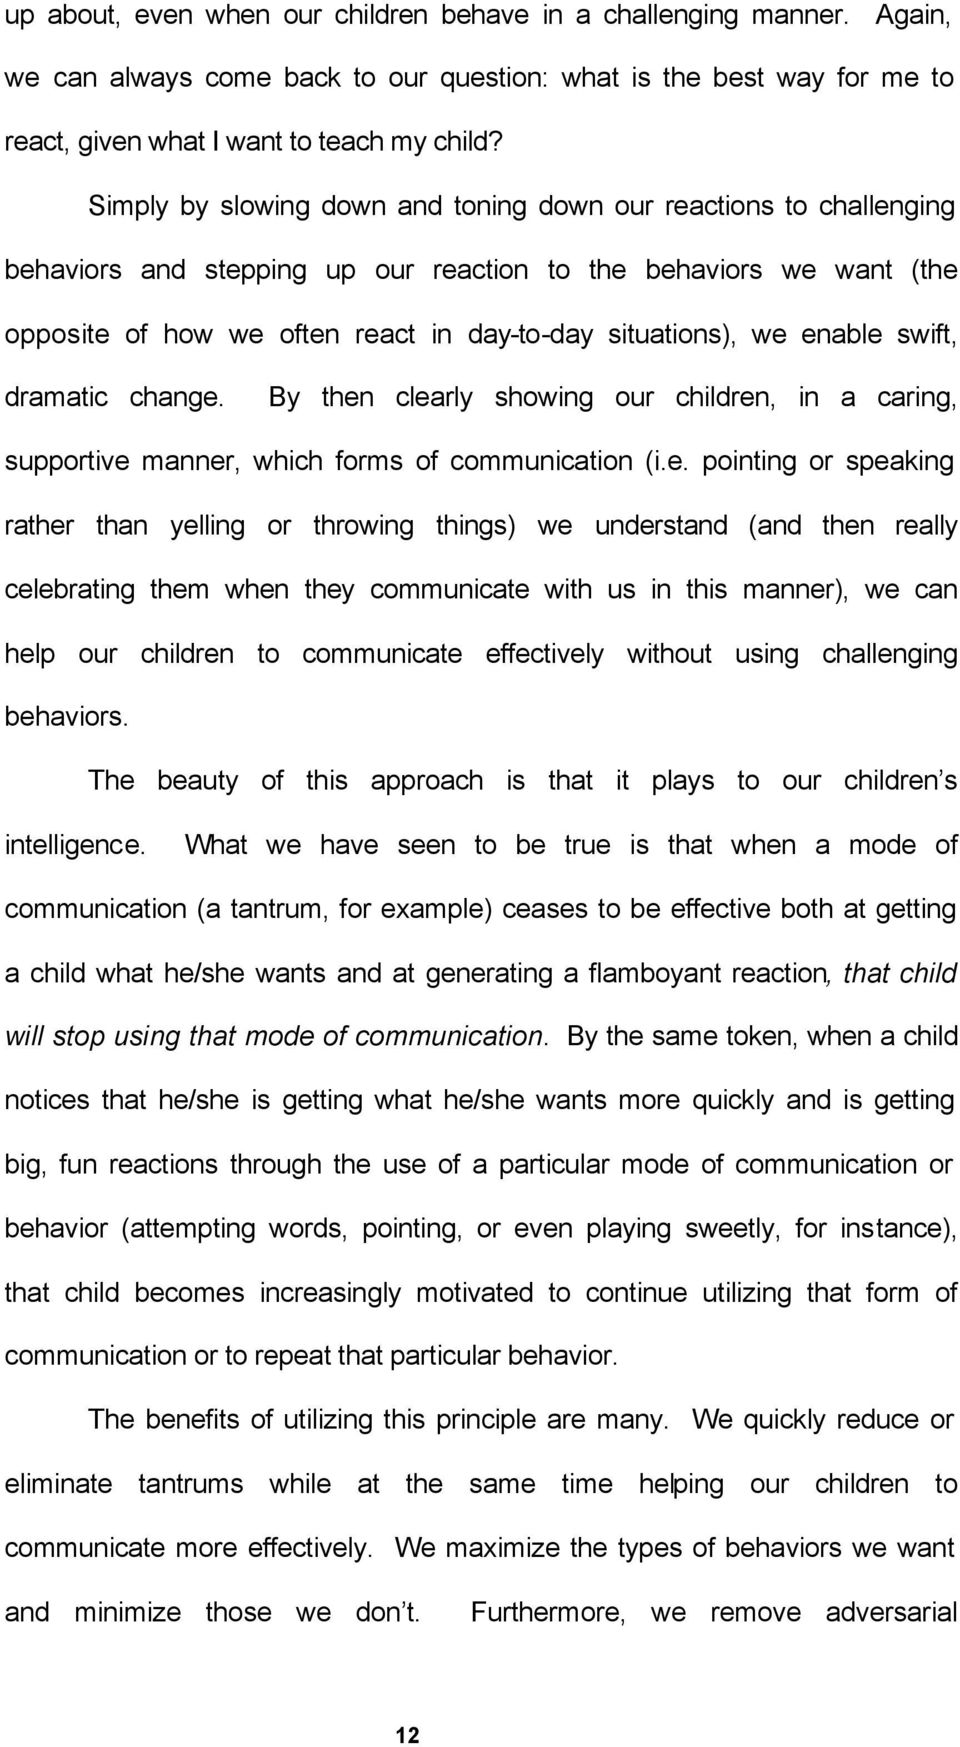 enable swift, dramatic change. By then clearly showing our children, in a caring, supportive manner, which forms of communication (i.e. pointing or speaking rather than yelling or throwing things) we